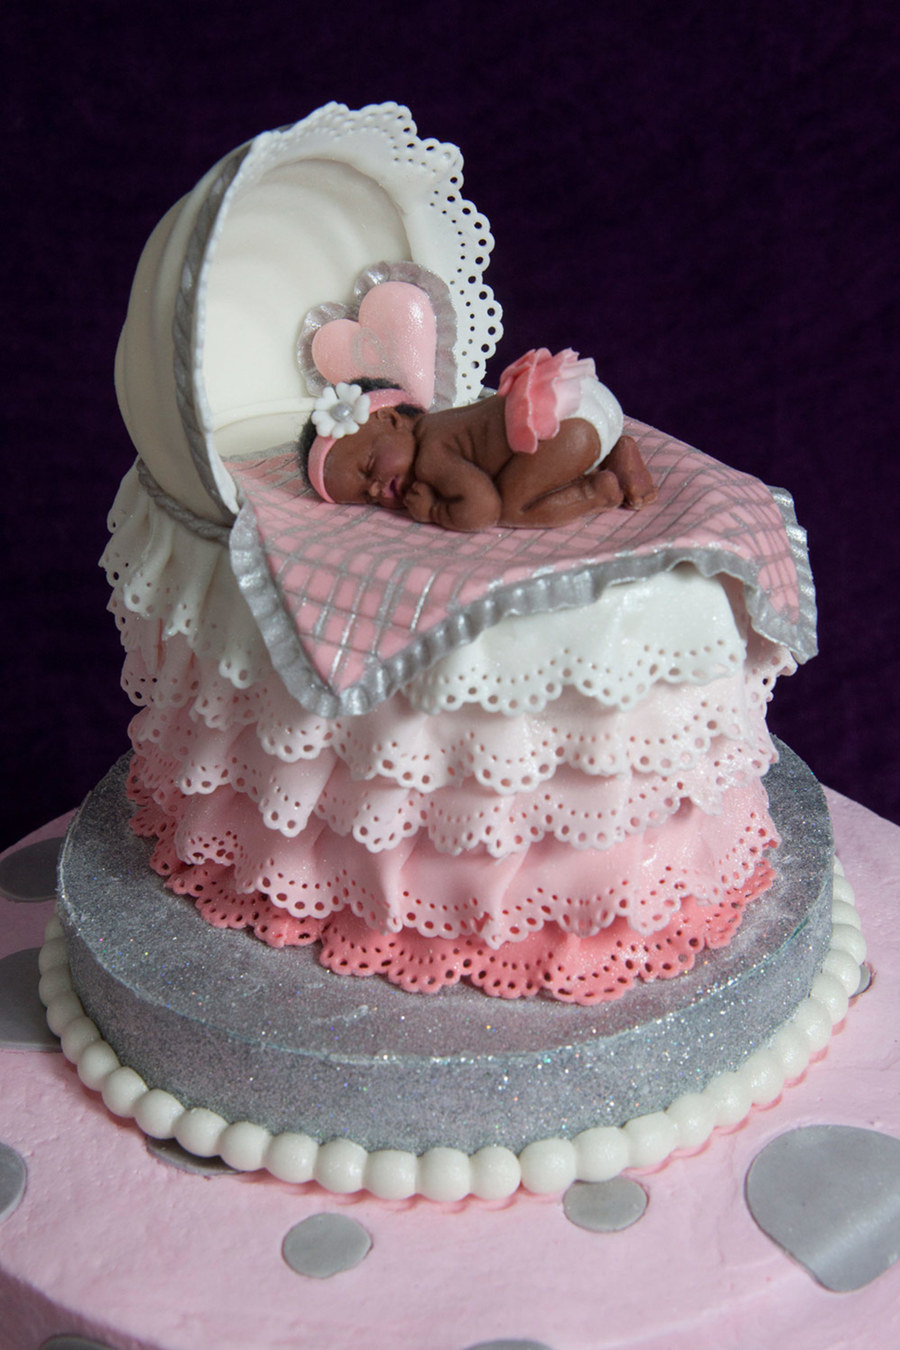 How To Make A Baby Bassinet Cake Topper